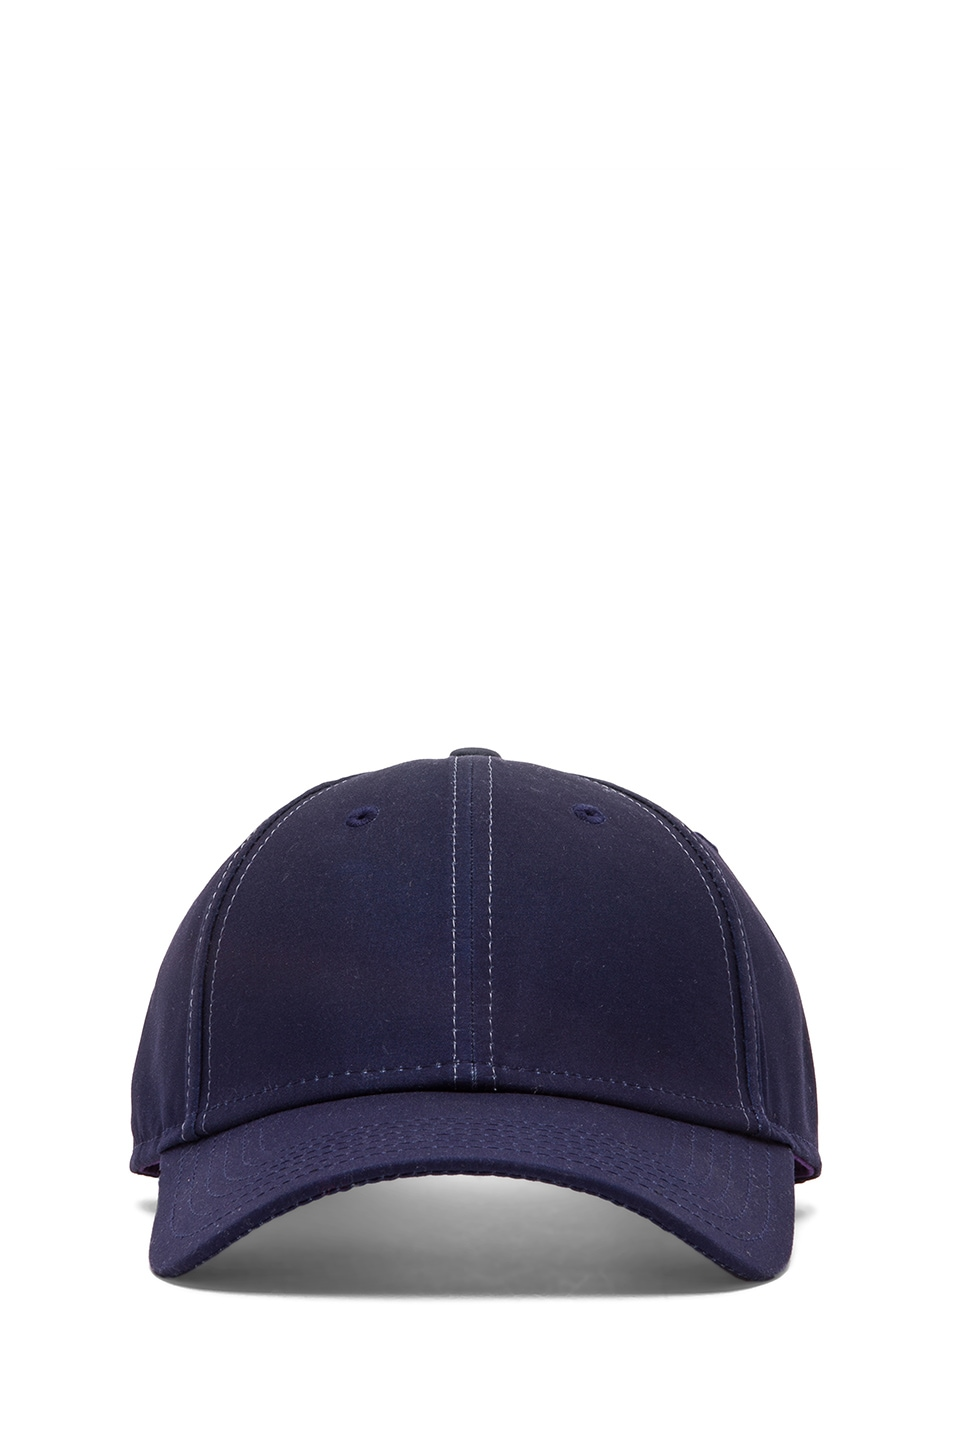 Gents Co. Hola Ombre Cap in Navy Grey